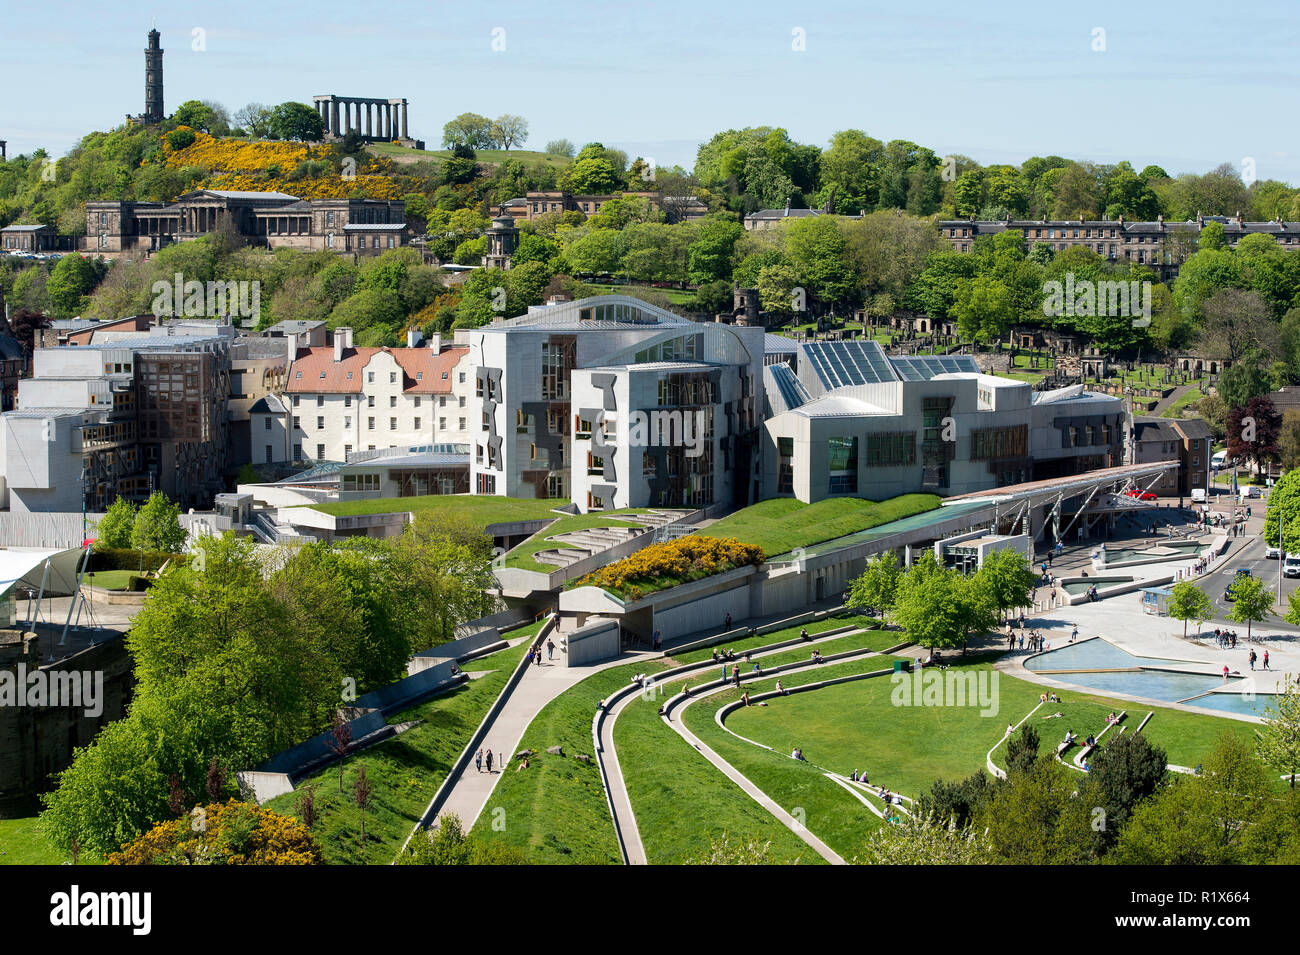 A view of the Scottish Parliament at Holyrood and Calton Hill behind, Edinburgh, Scotland. - Stock Image